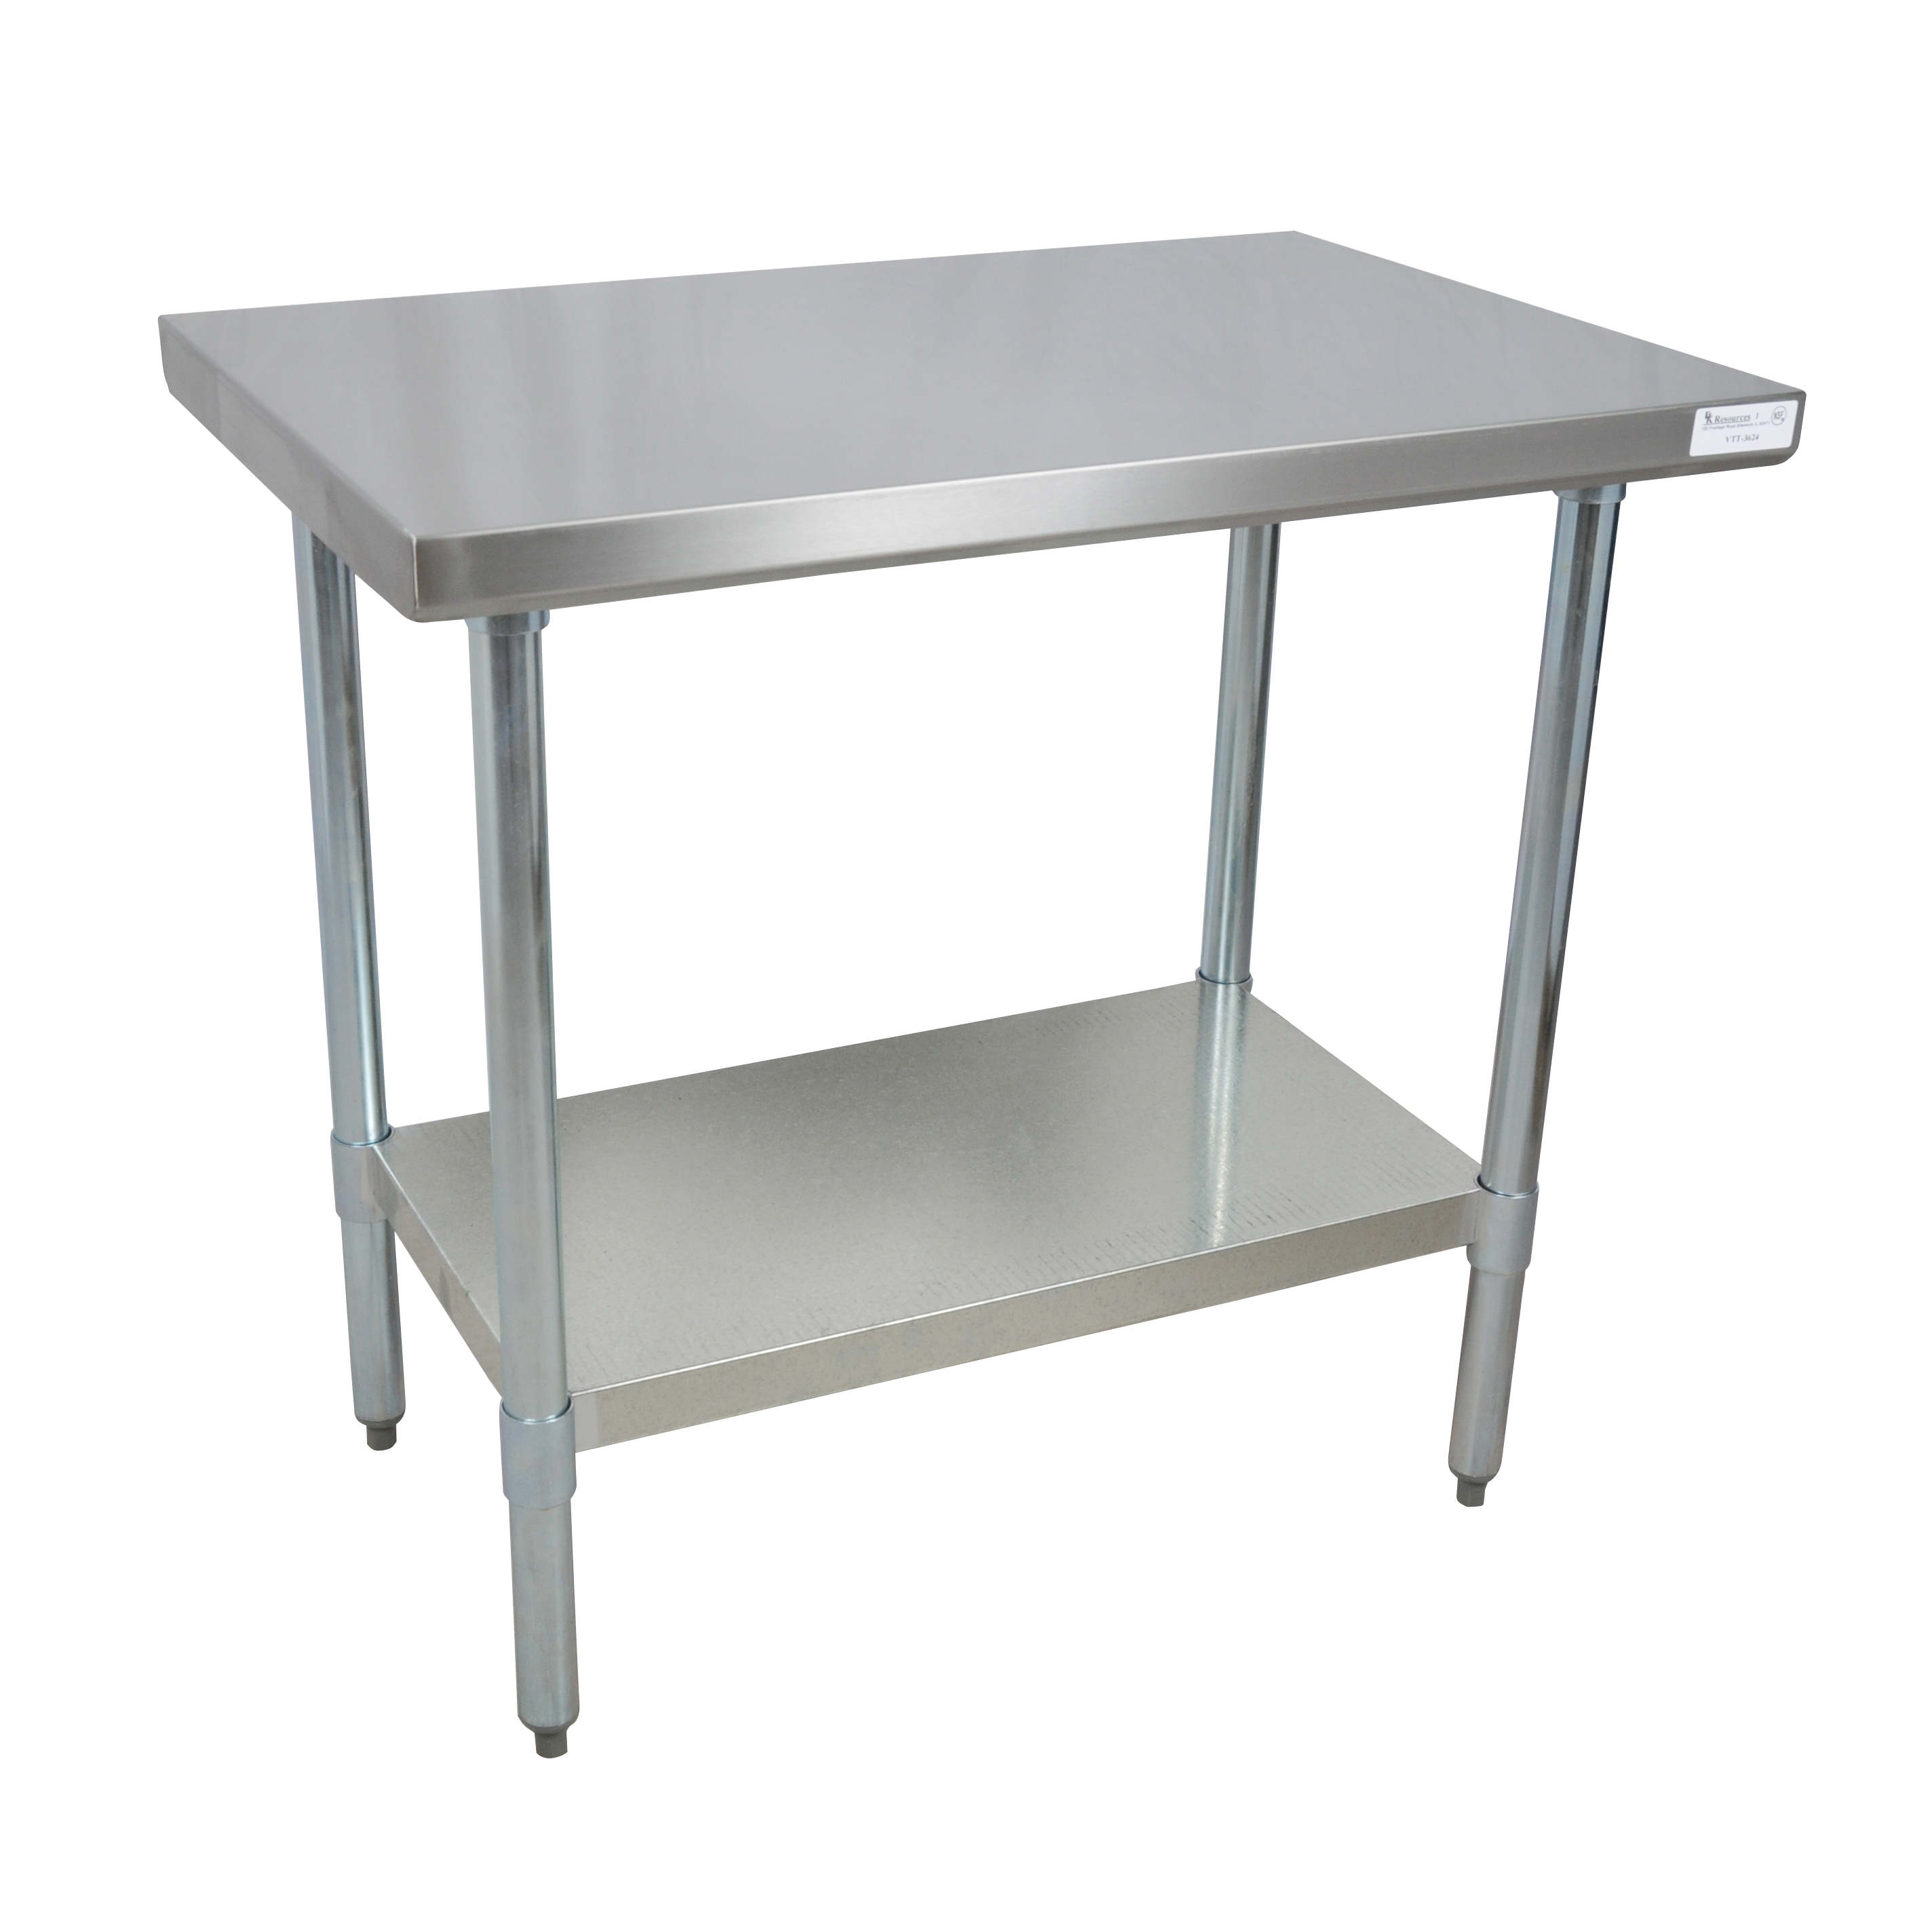 BK Resources QVT-4830 work table,  40